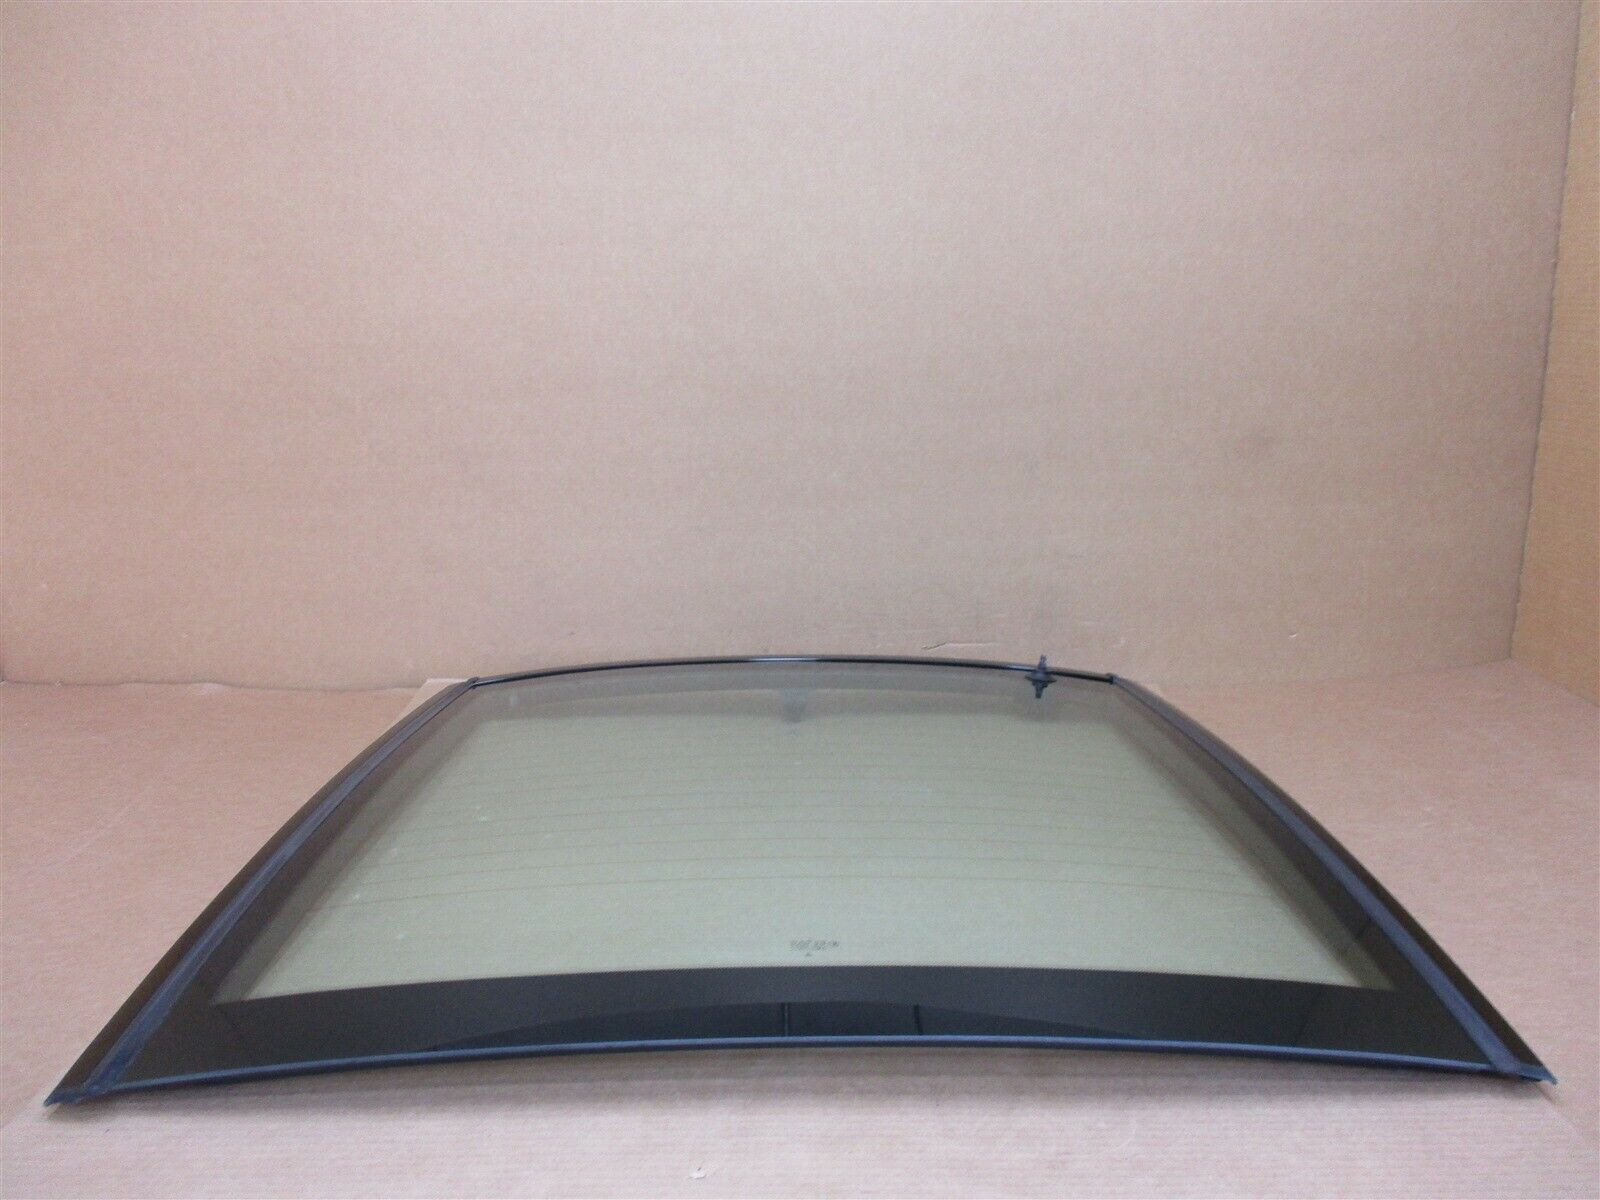 03 Carrera Targa 911 RWD Porsche 996 REAR SEKURIT HATCH WINDOW 43R-001025 89,570